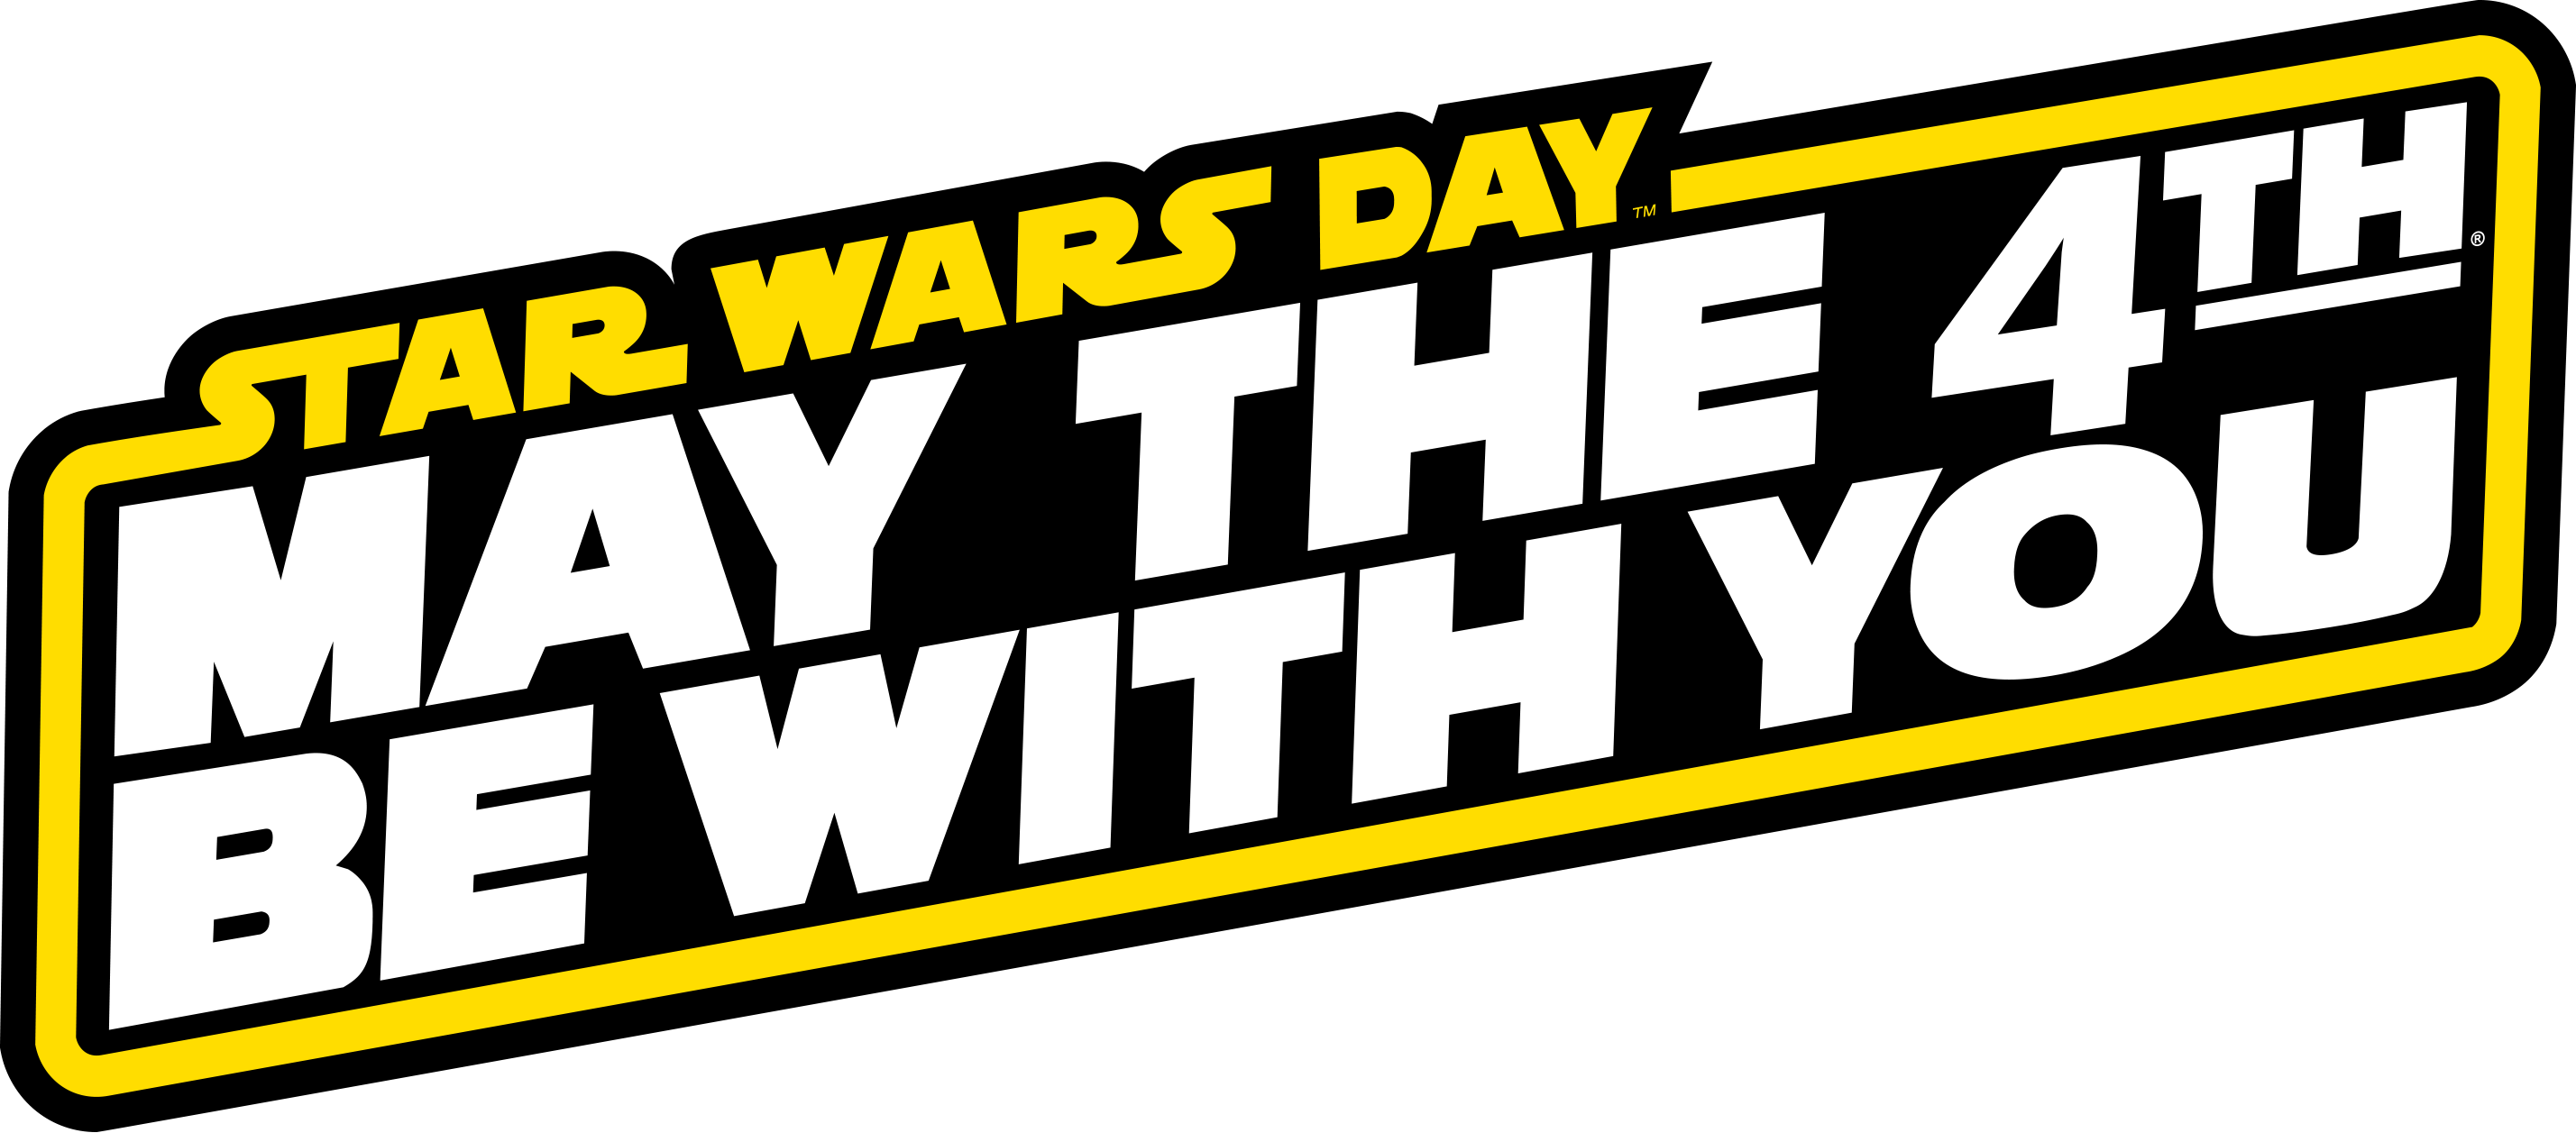 Starwars clipart may the fourth be with you. Star wars day dig